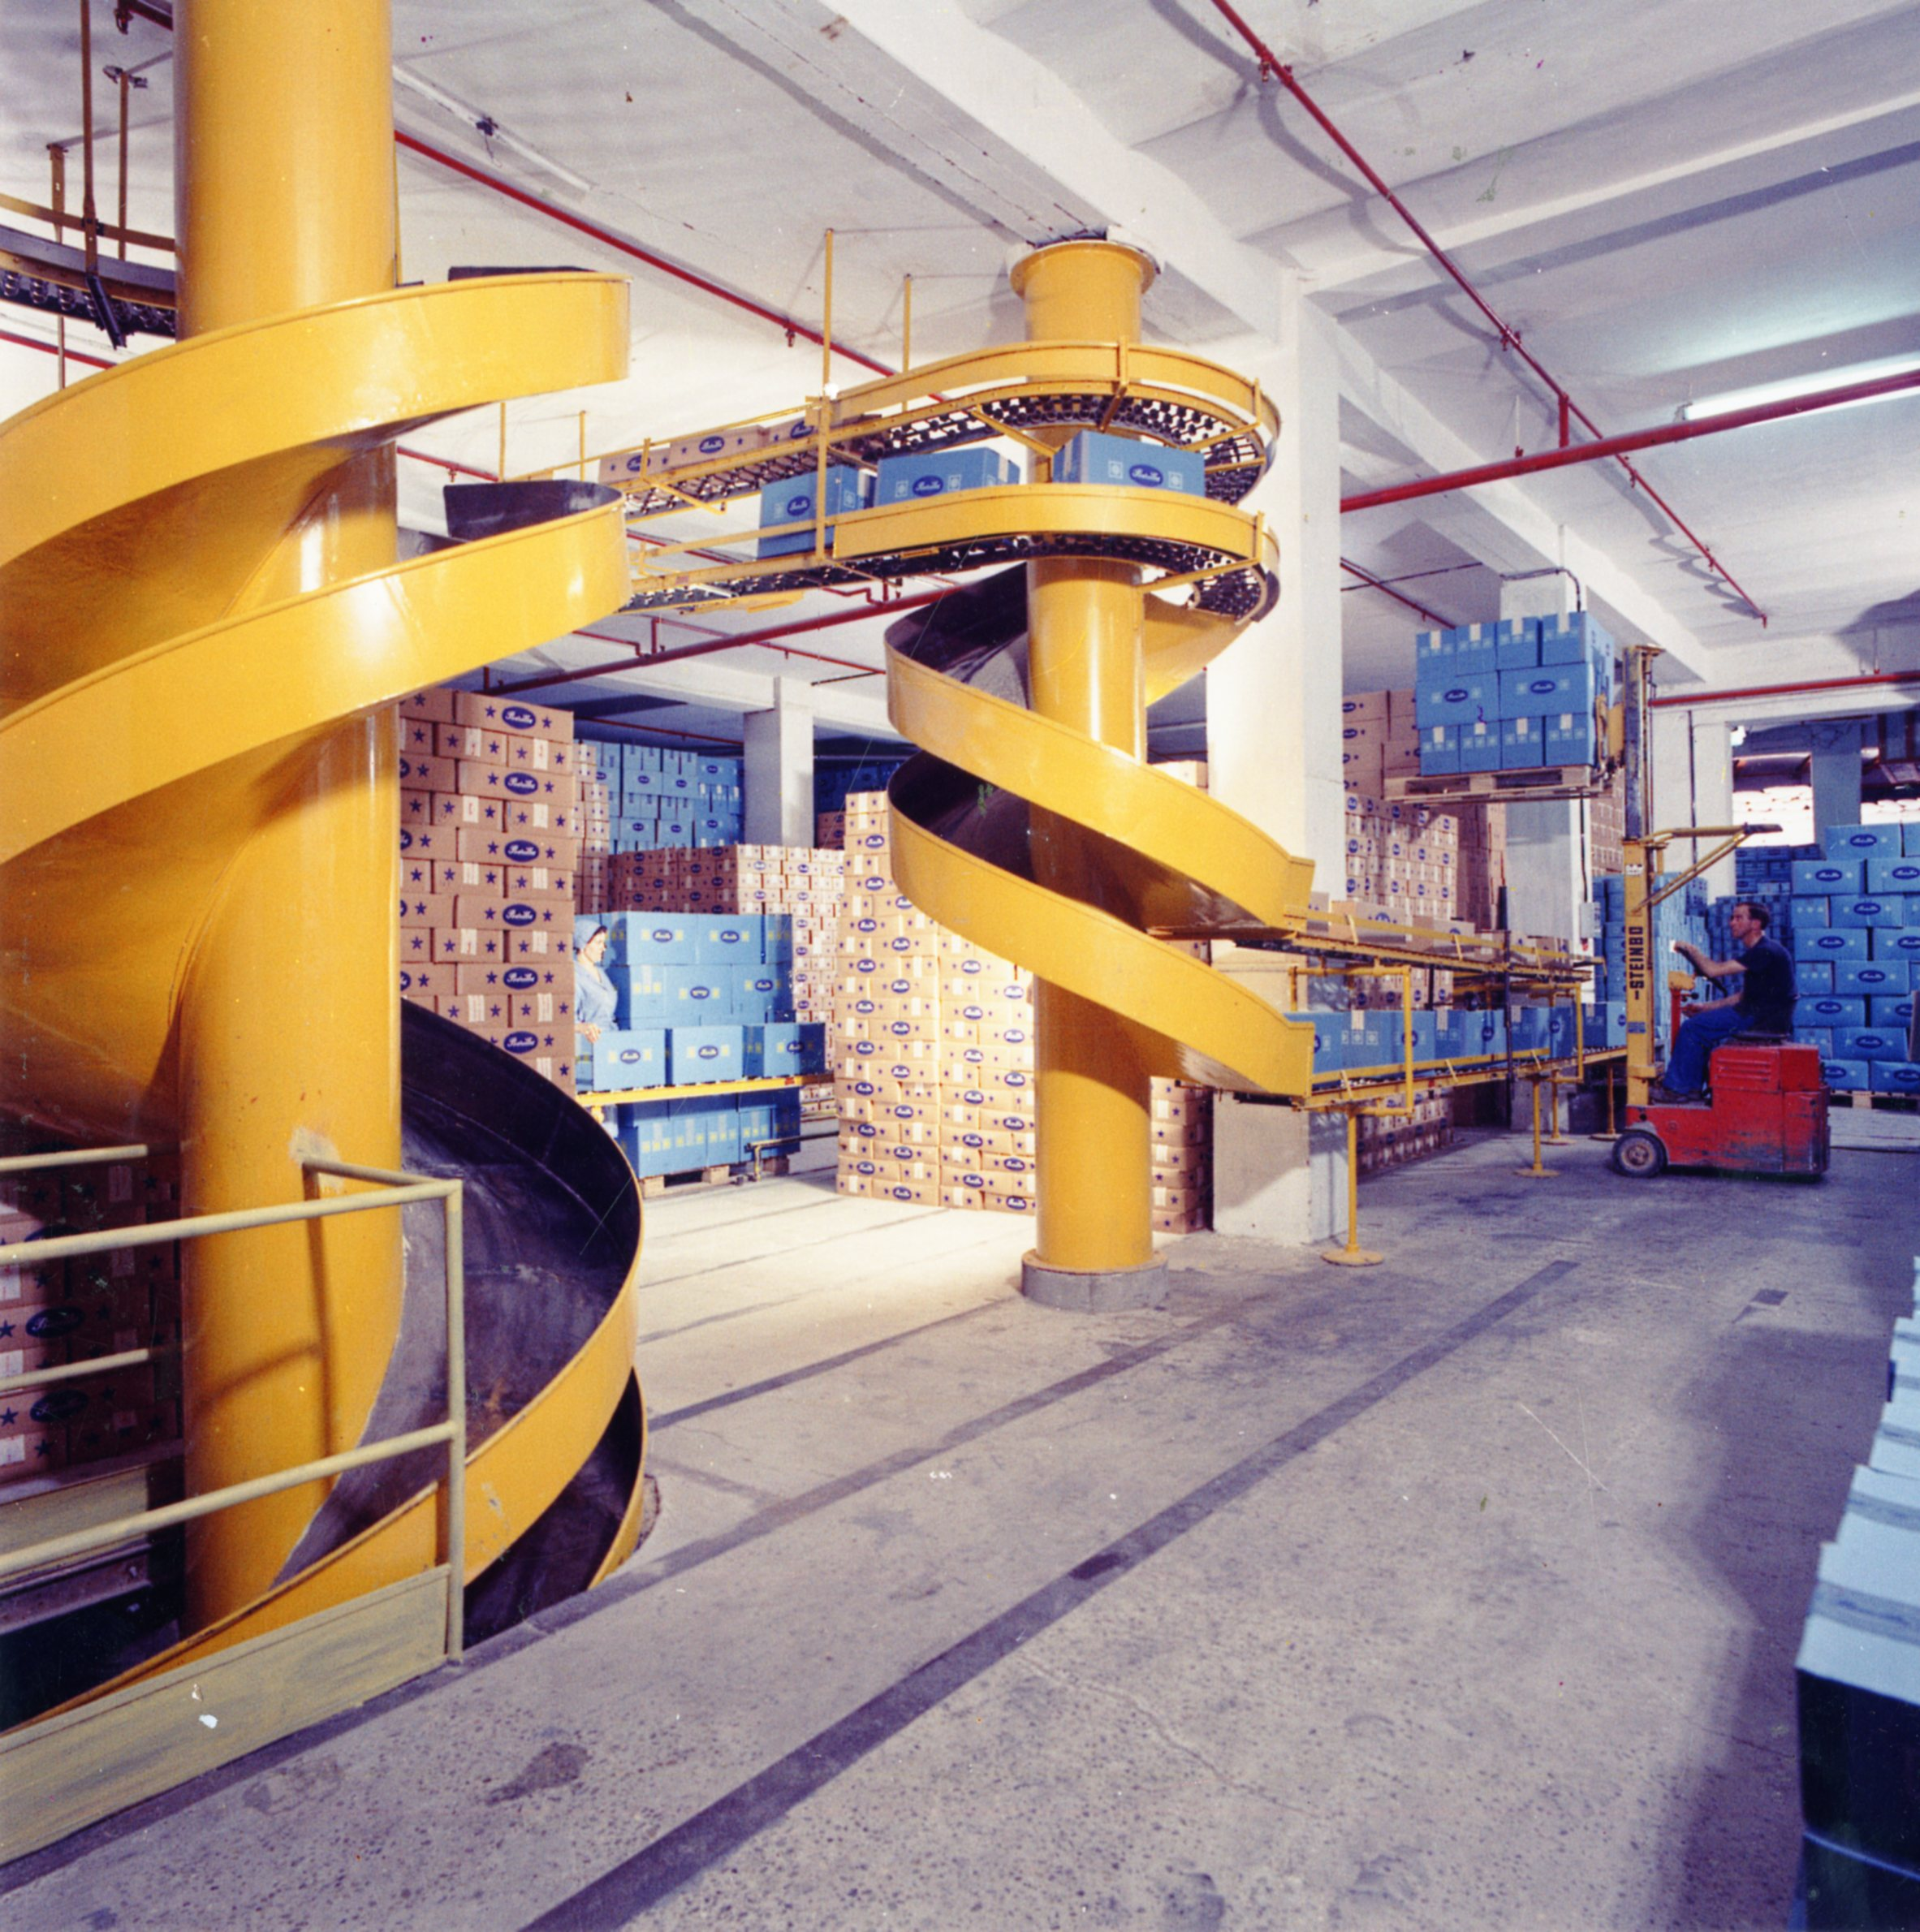 An inner view of the storage areas on ground level, characterized by helicoidal slipways to send down the packaged product in a photo by Bruno Vaghi dating from the early 1960s [ASB, O, Plants].